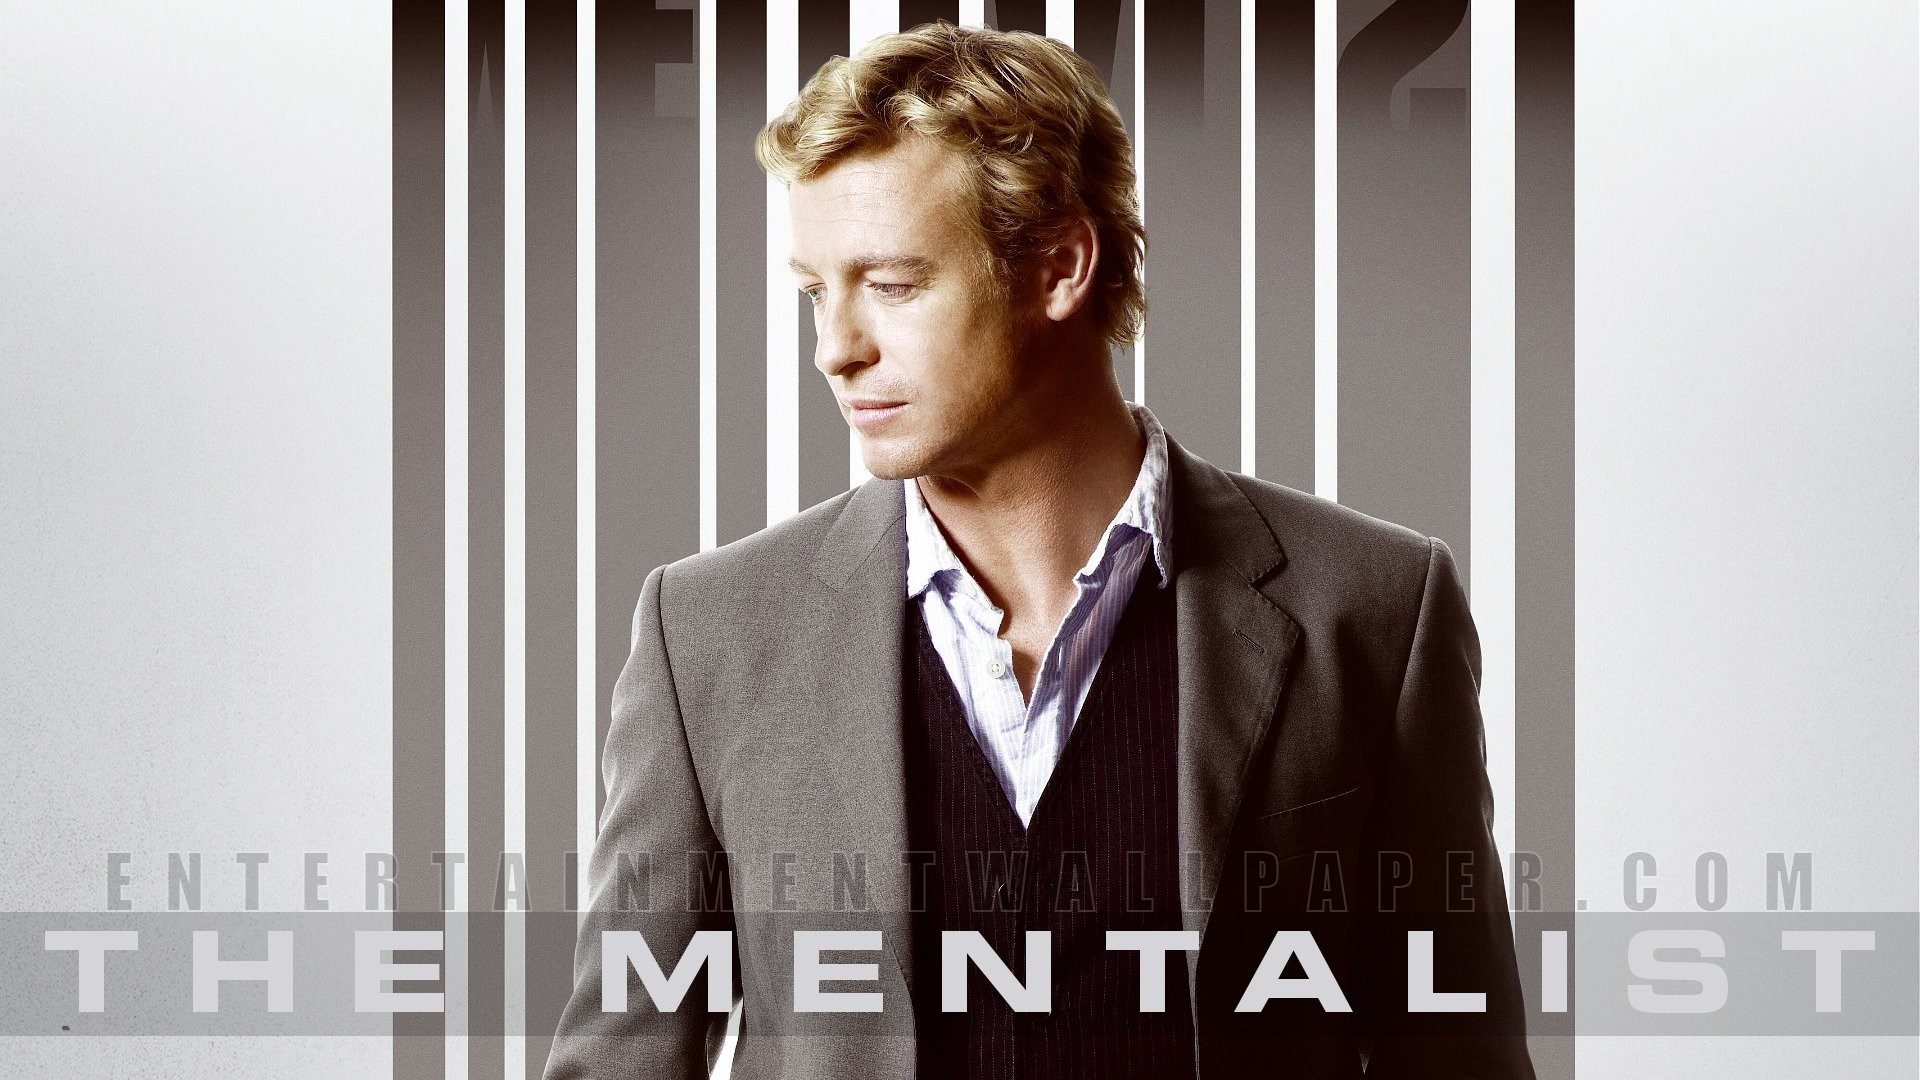 The Mentalist Wallpaper 70 Images